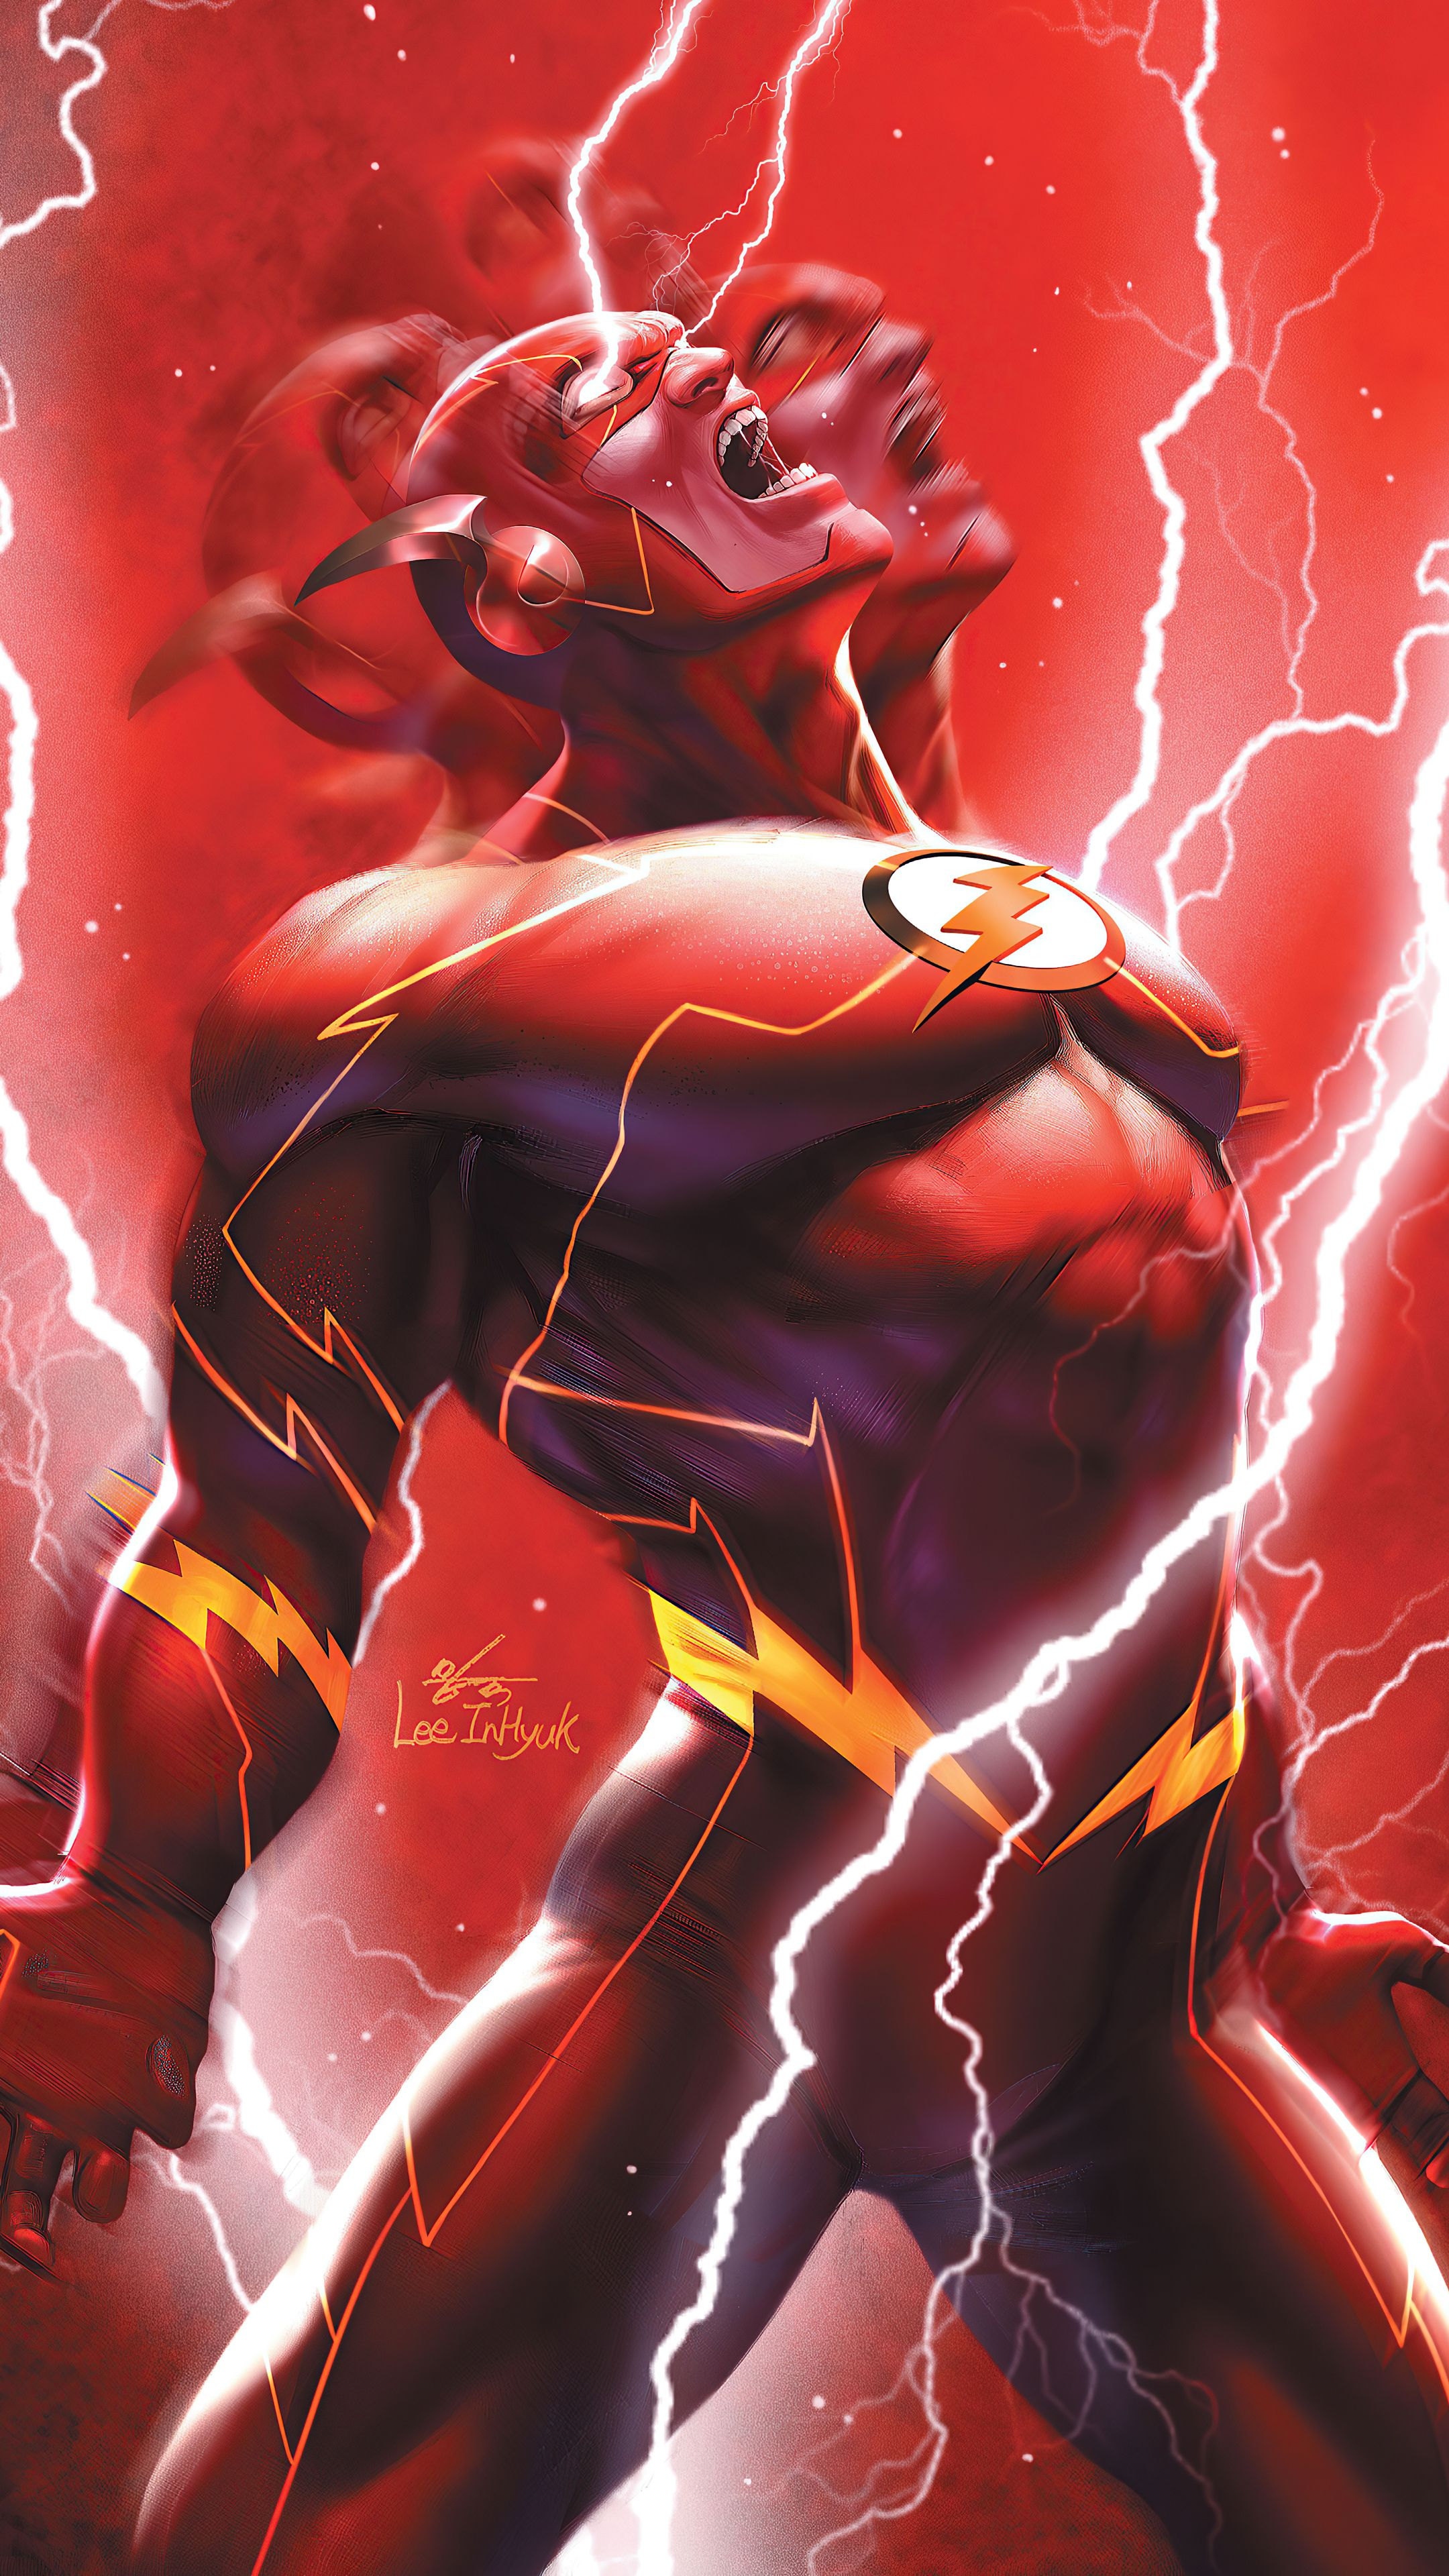 17 Eye Catching Wallpapers For Your Phone Flash Wallpaper Superhero Wallpaper The Flash